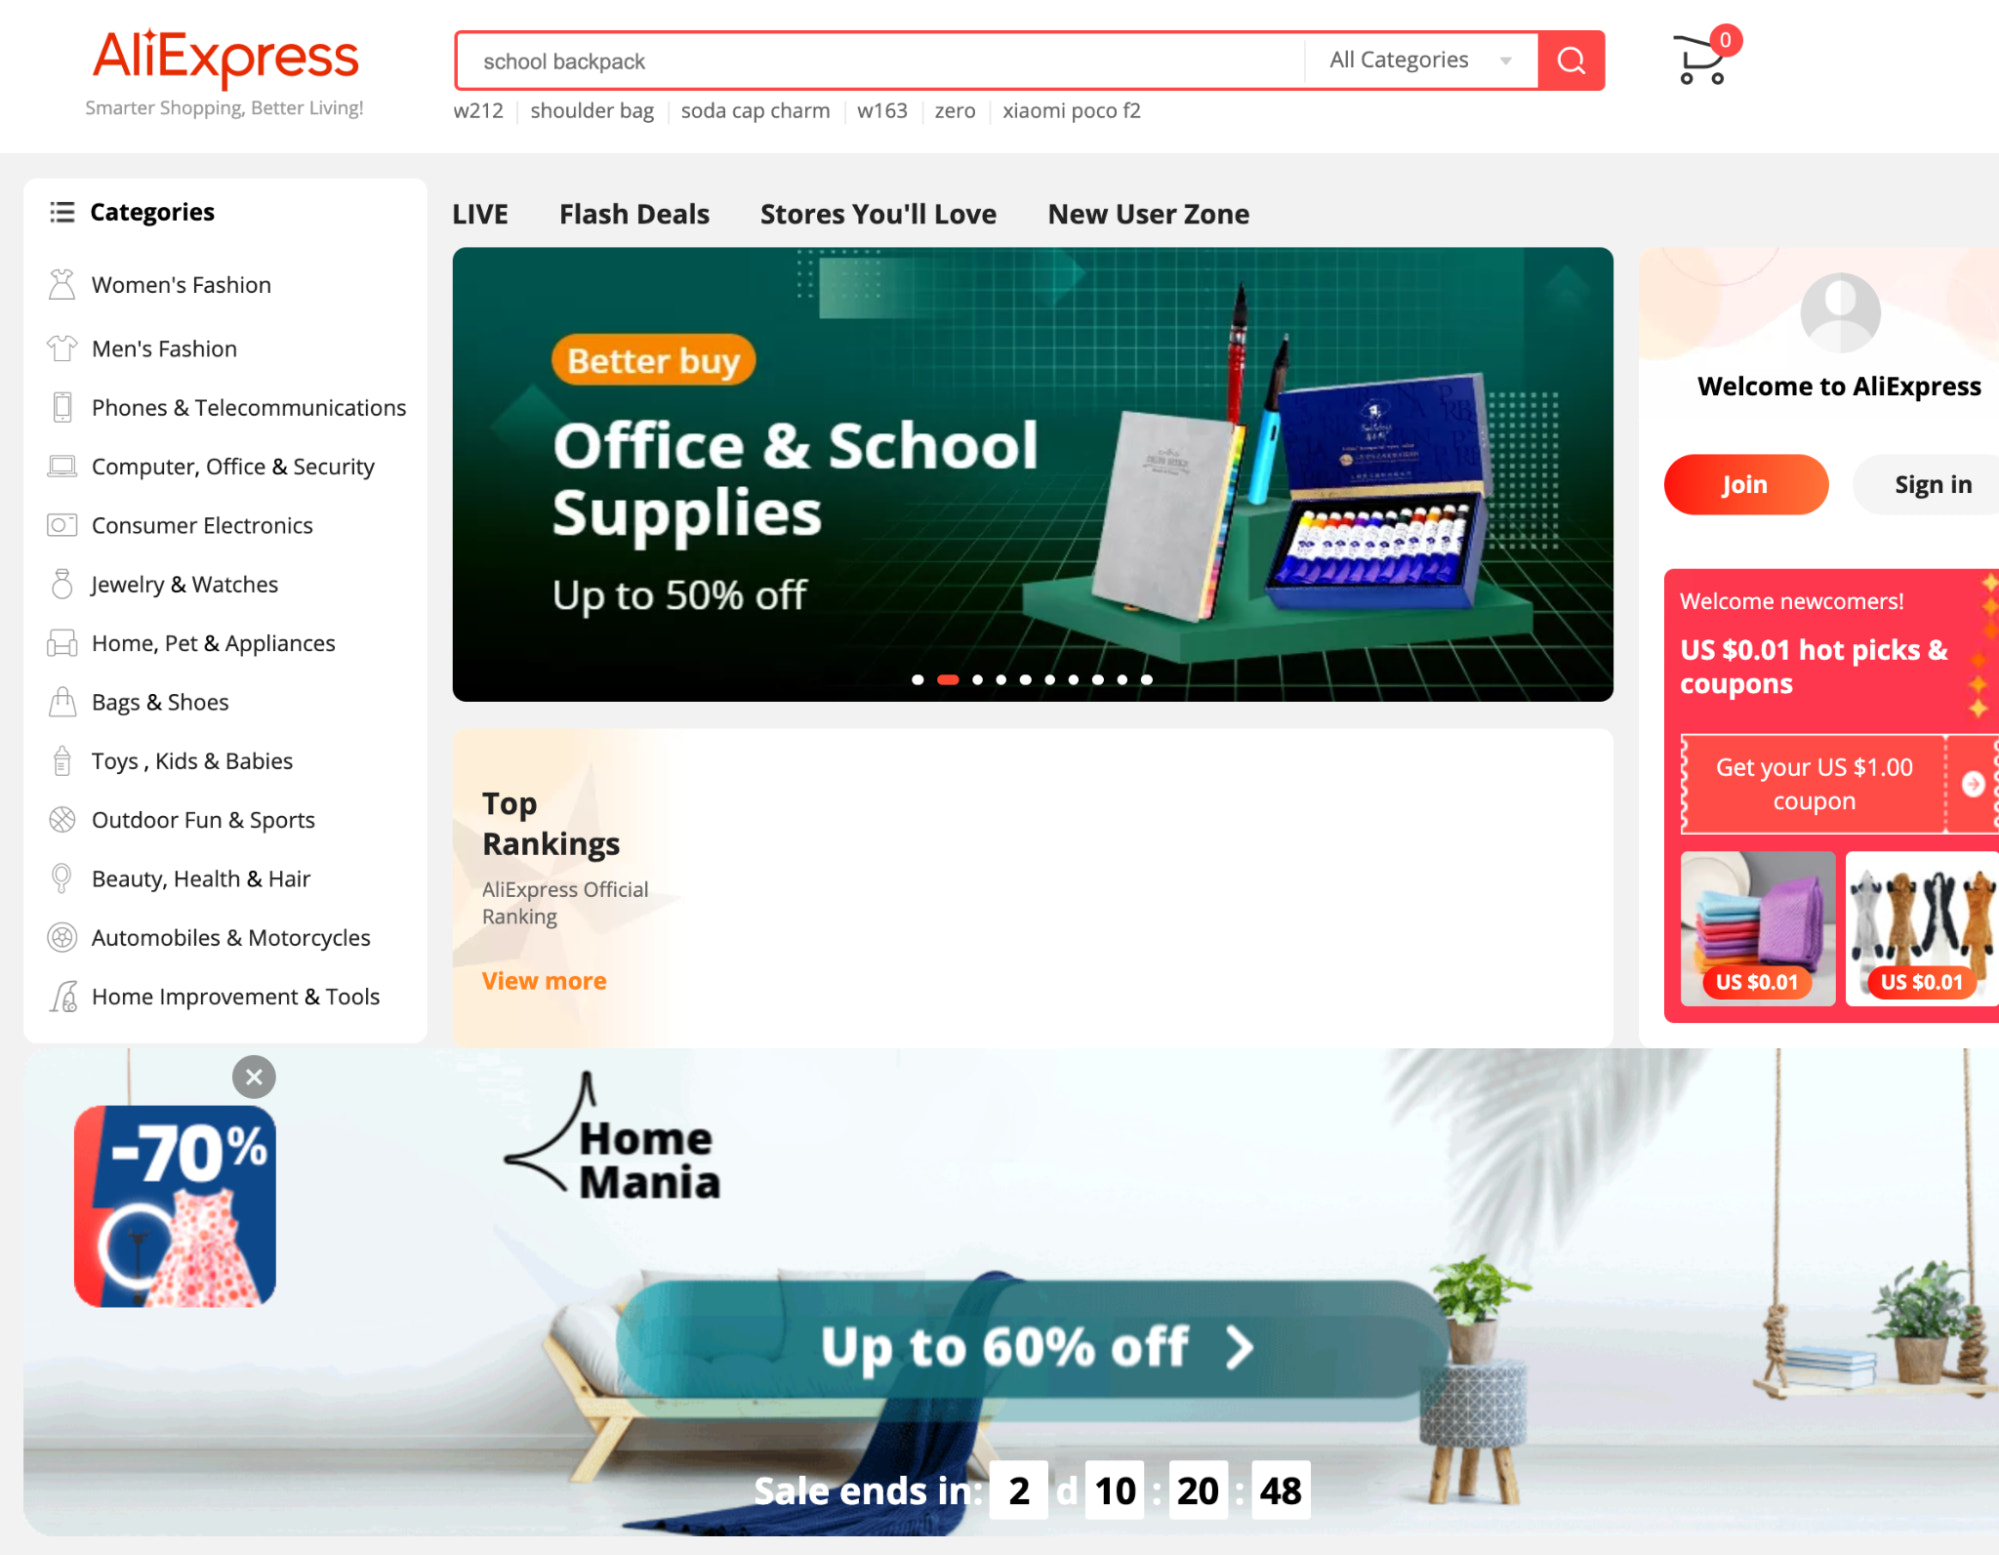 aliexpress homepage for product research